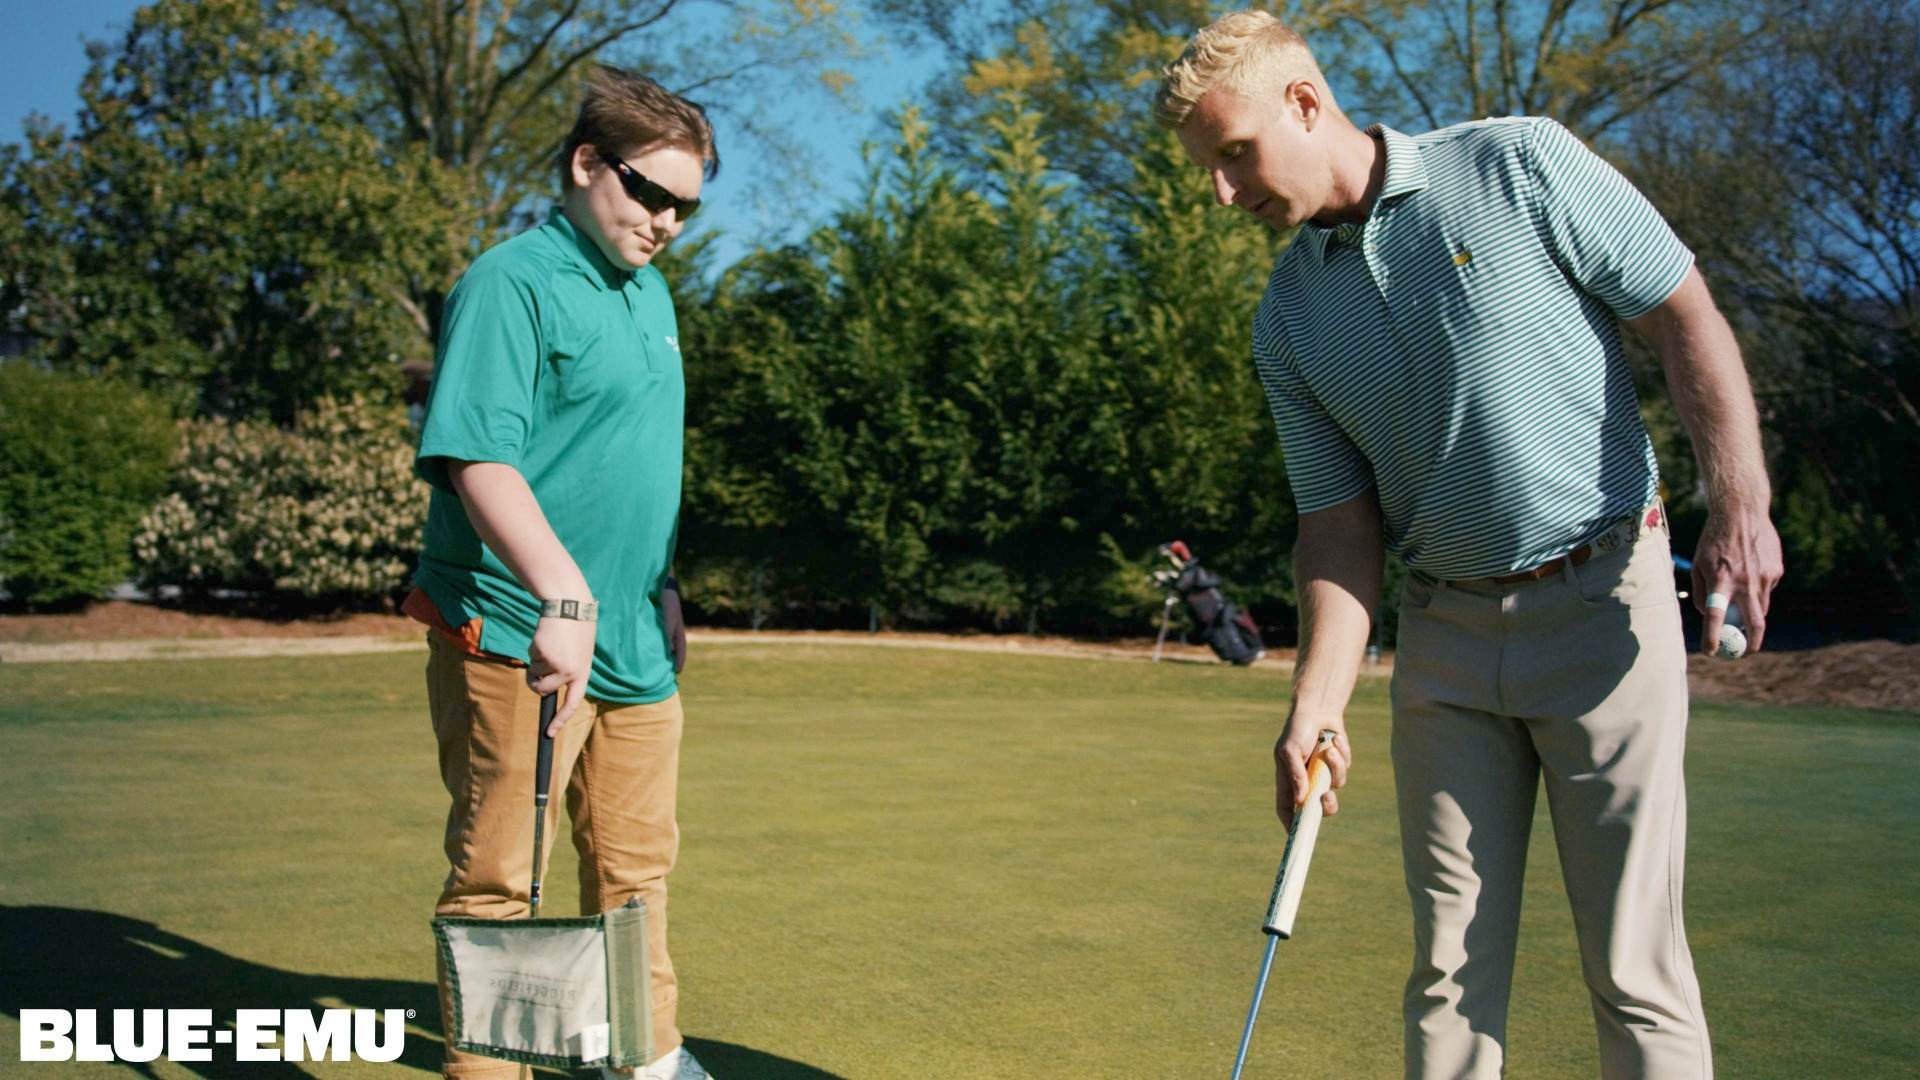 Image of Chase Vicars teaching a boy how to play golf as part of his charity Golf Impact